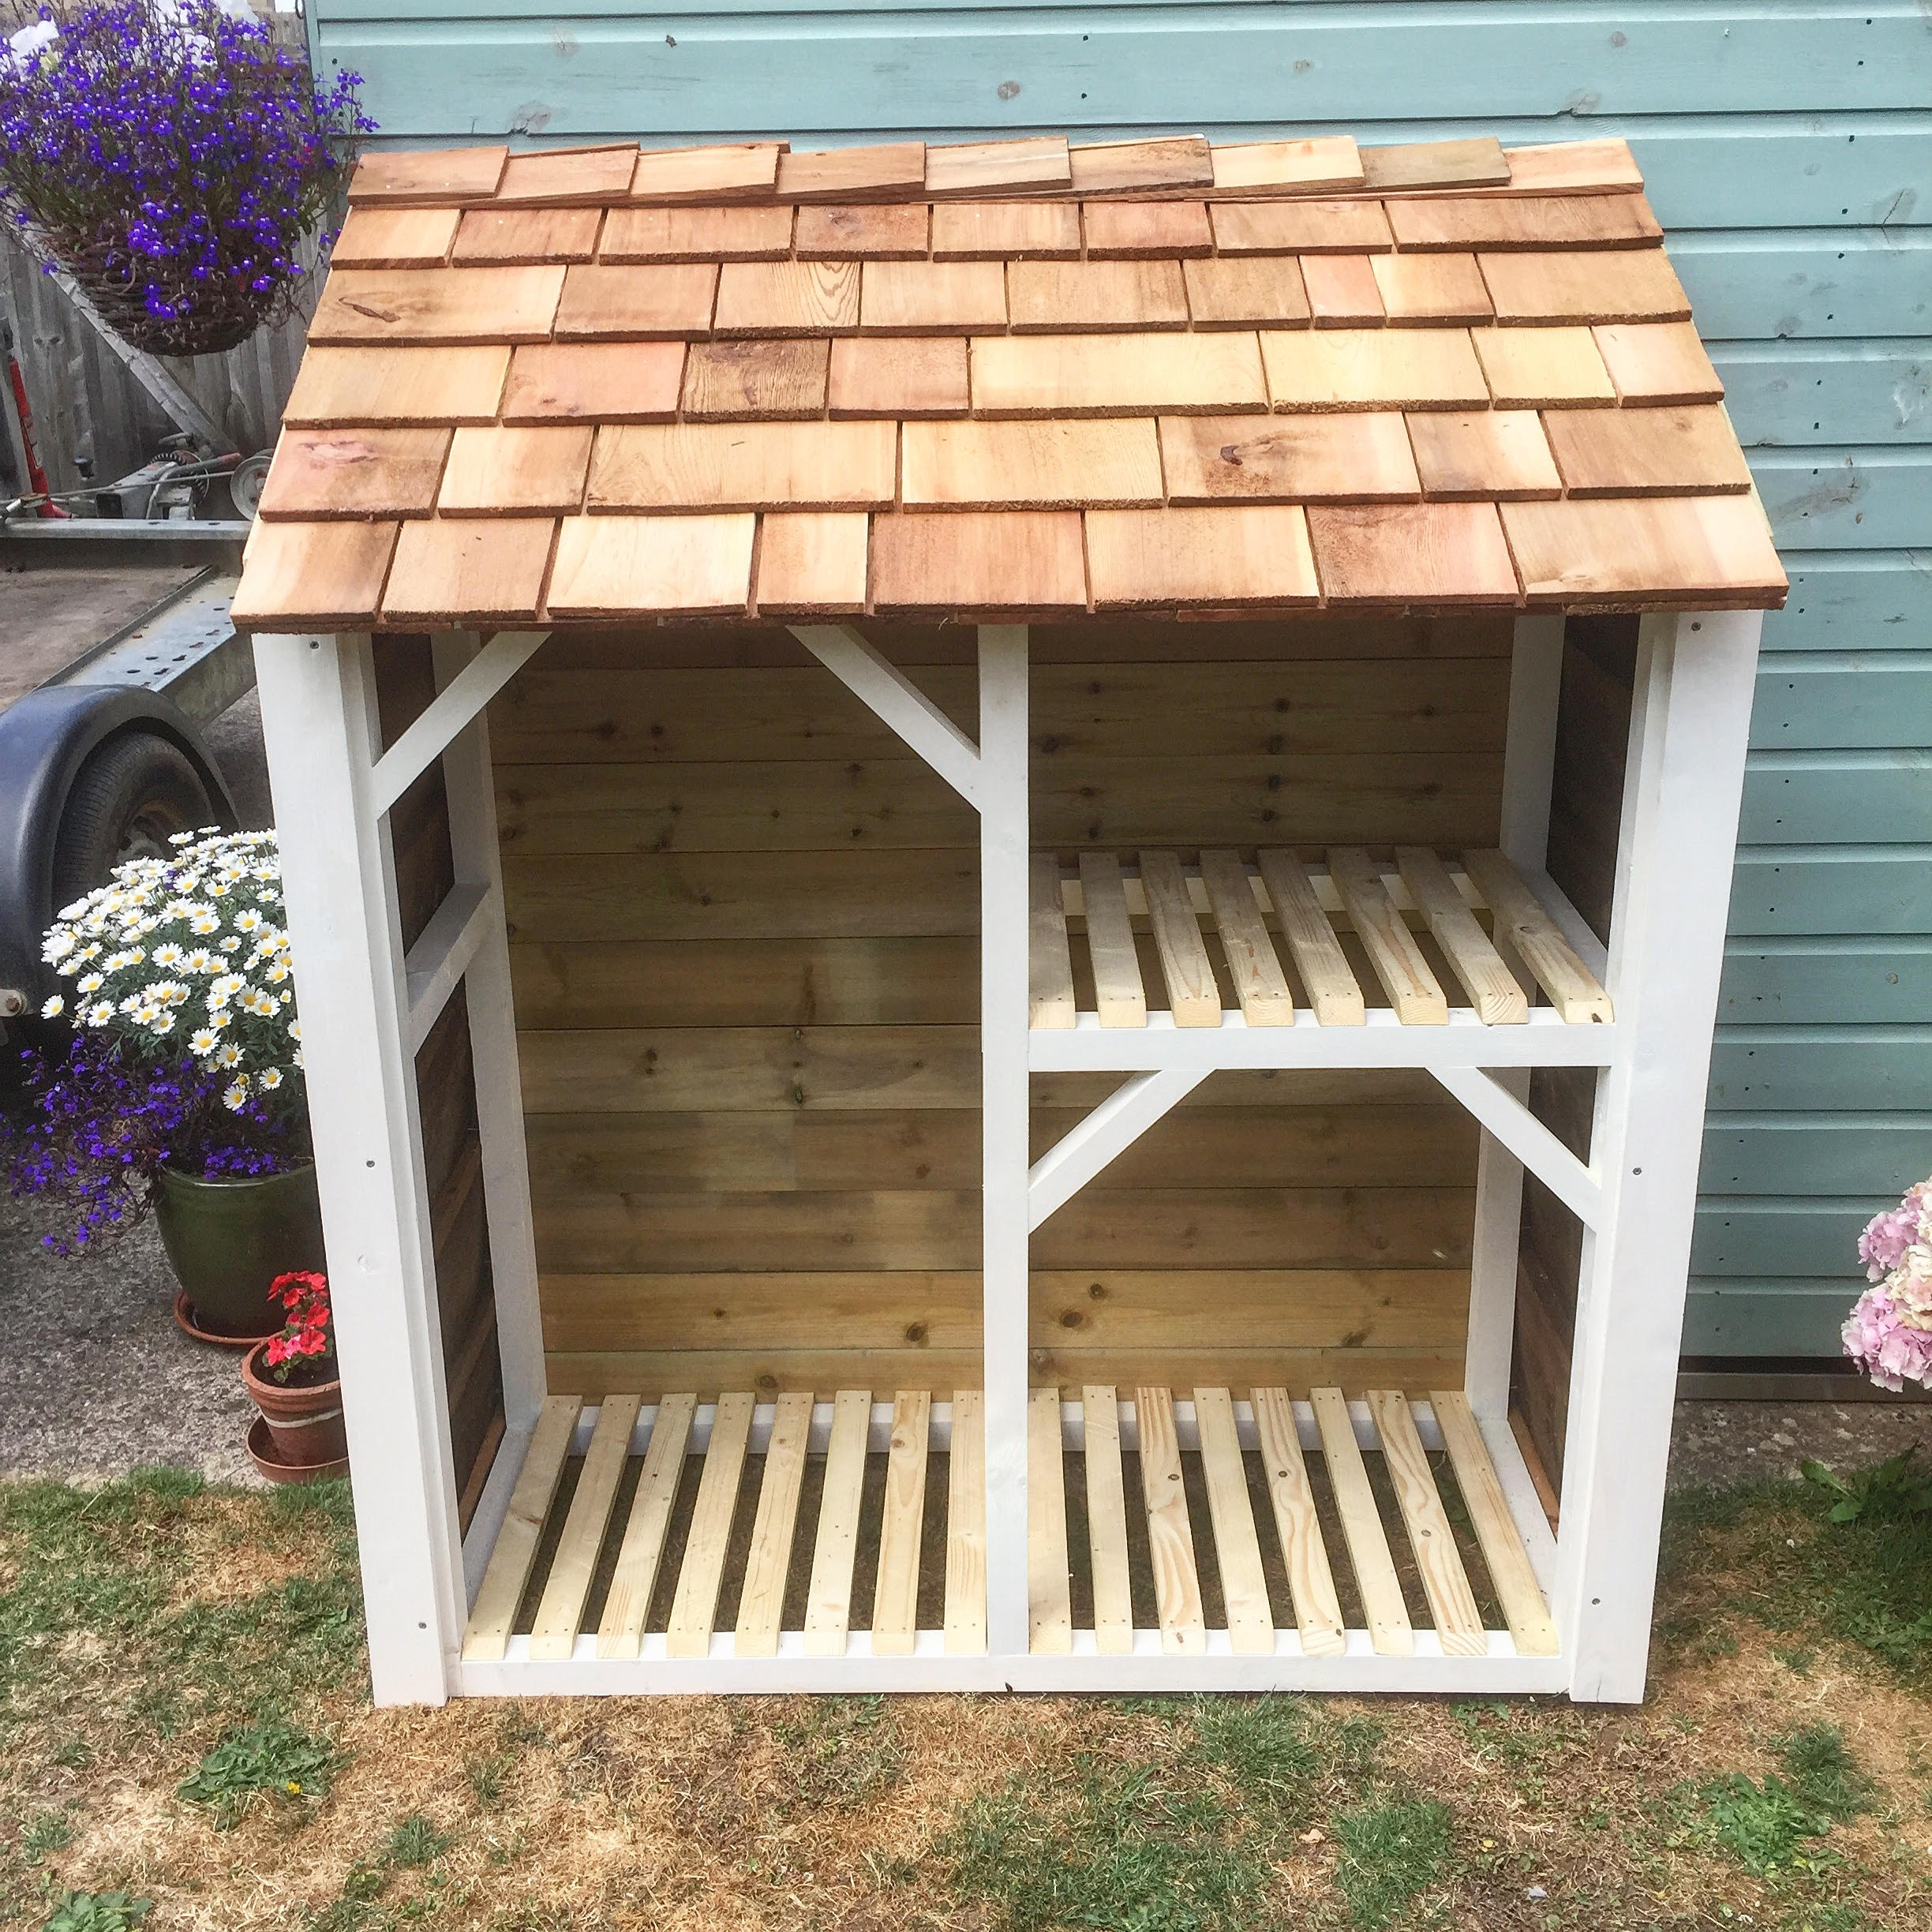 """Firewood Logstore - """"Loving my new wood store. Beautifully built, and looks great too. thanks Rich""""Mrs Ayres - Kings Stanley"""